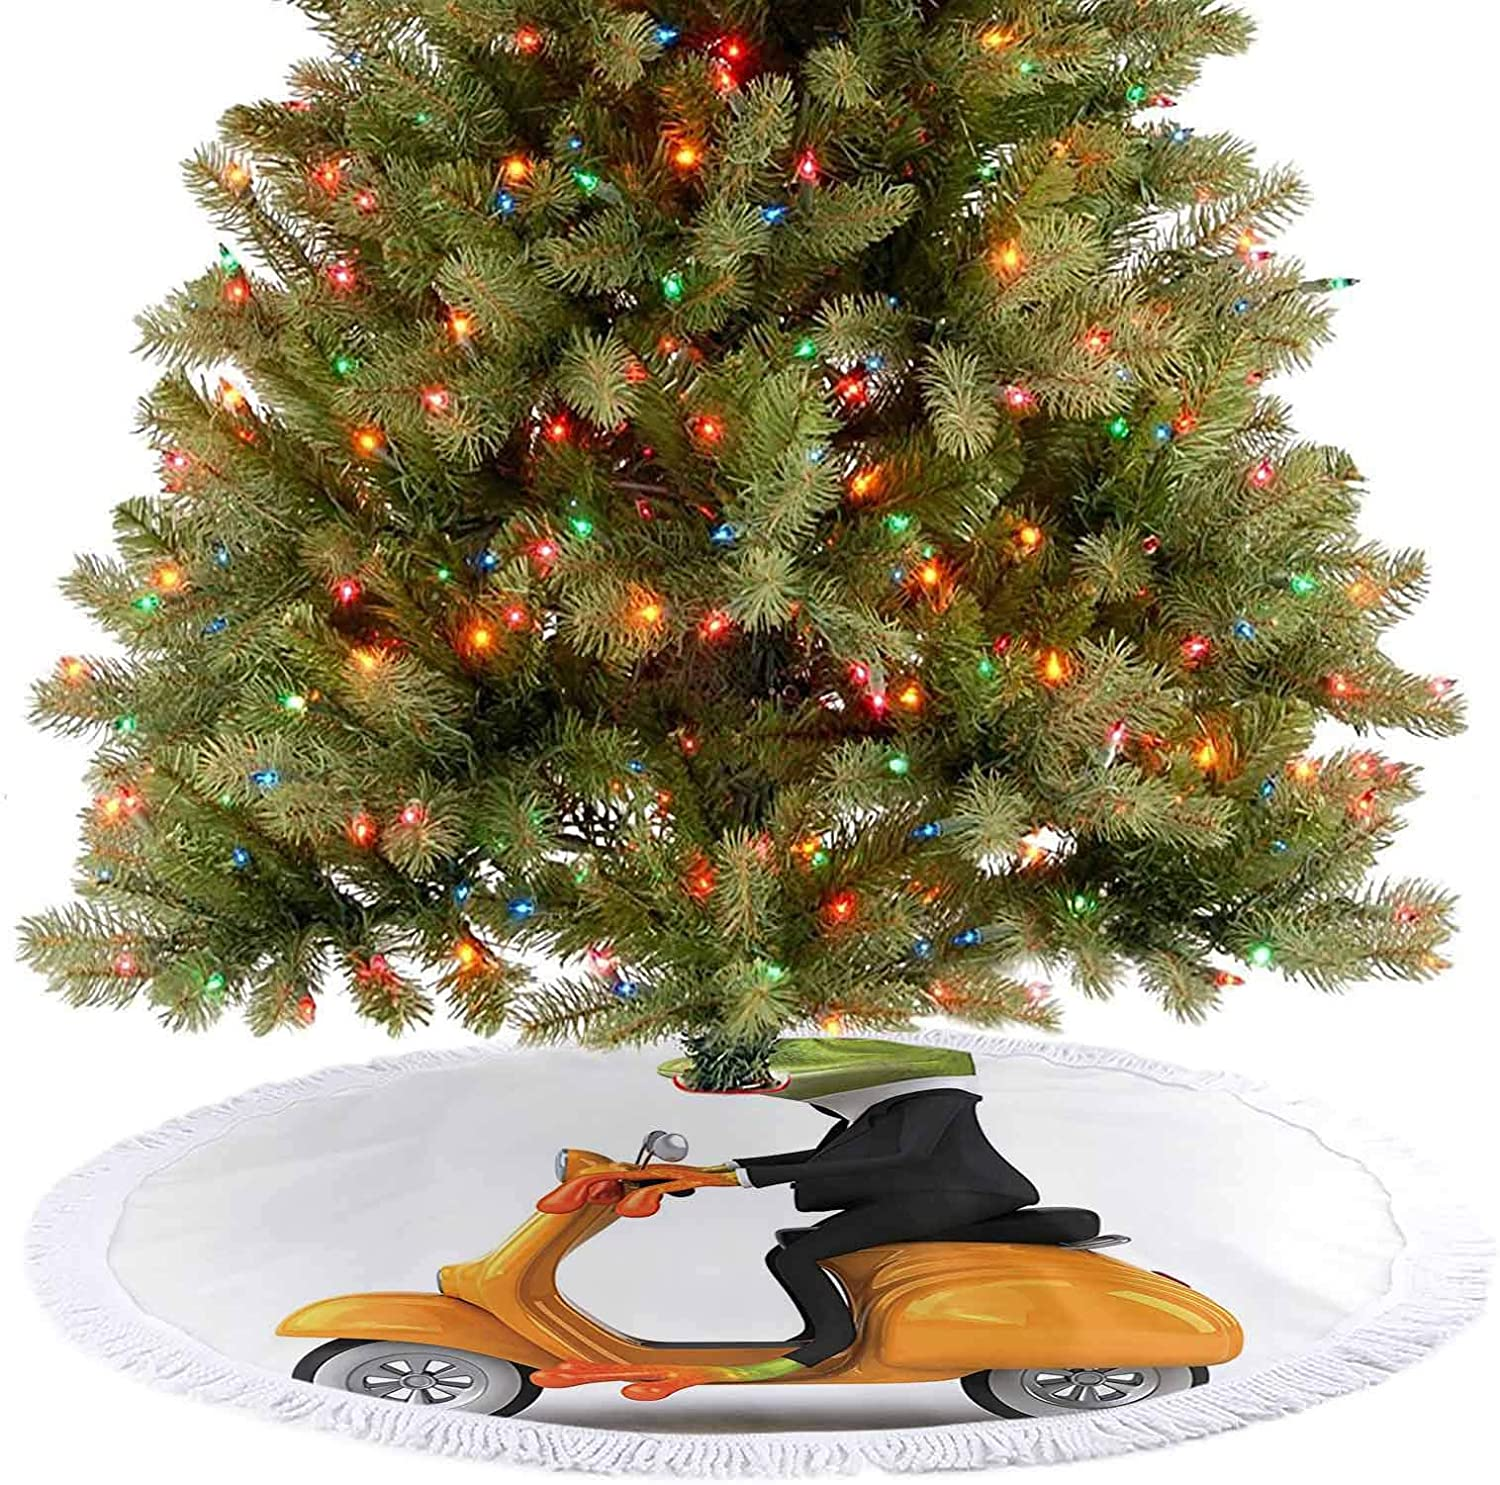 Tree Skirt Serious Italian Stylish Frog Riding Motorcycle Fun Nature Graphic Urban Art Print Green 2020 New Christmas Tree Skirt Decoration for Christmas Holiday Party Decorations - 48 Inch